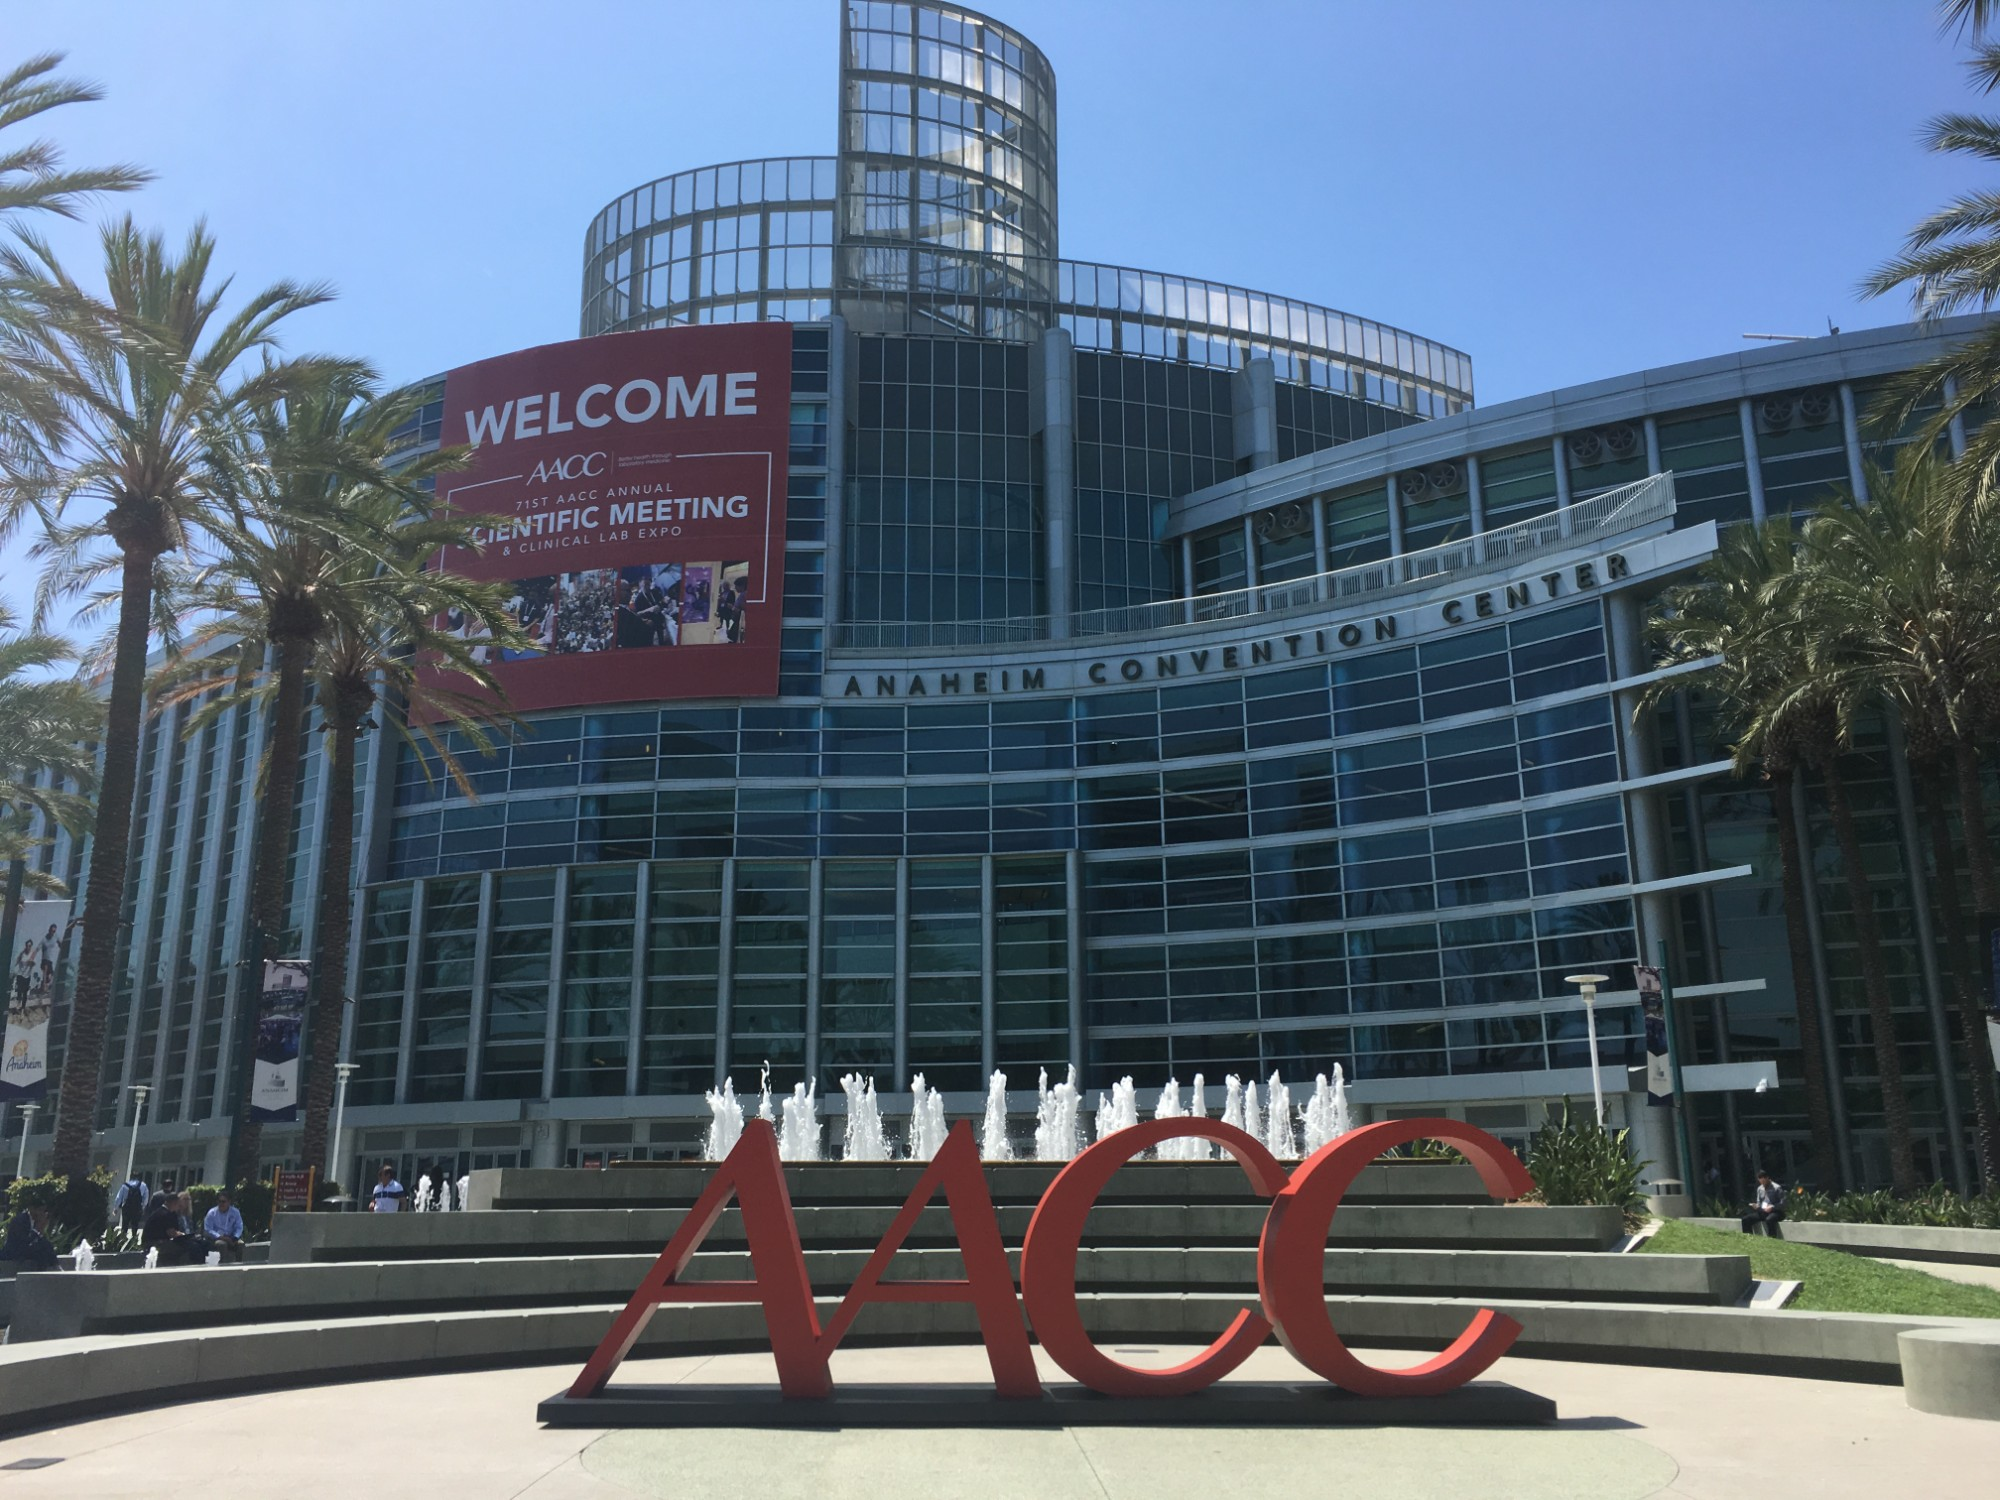 AACC - American Association for Clinical Chemistry 2019